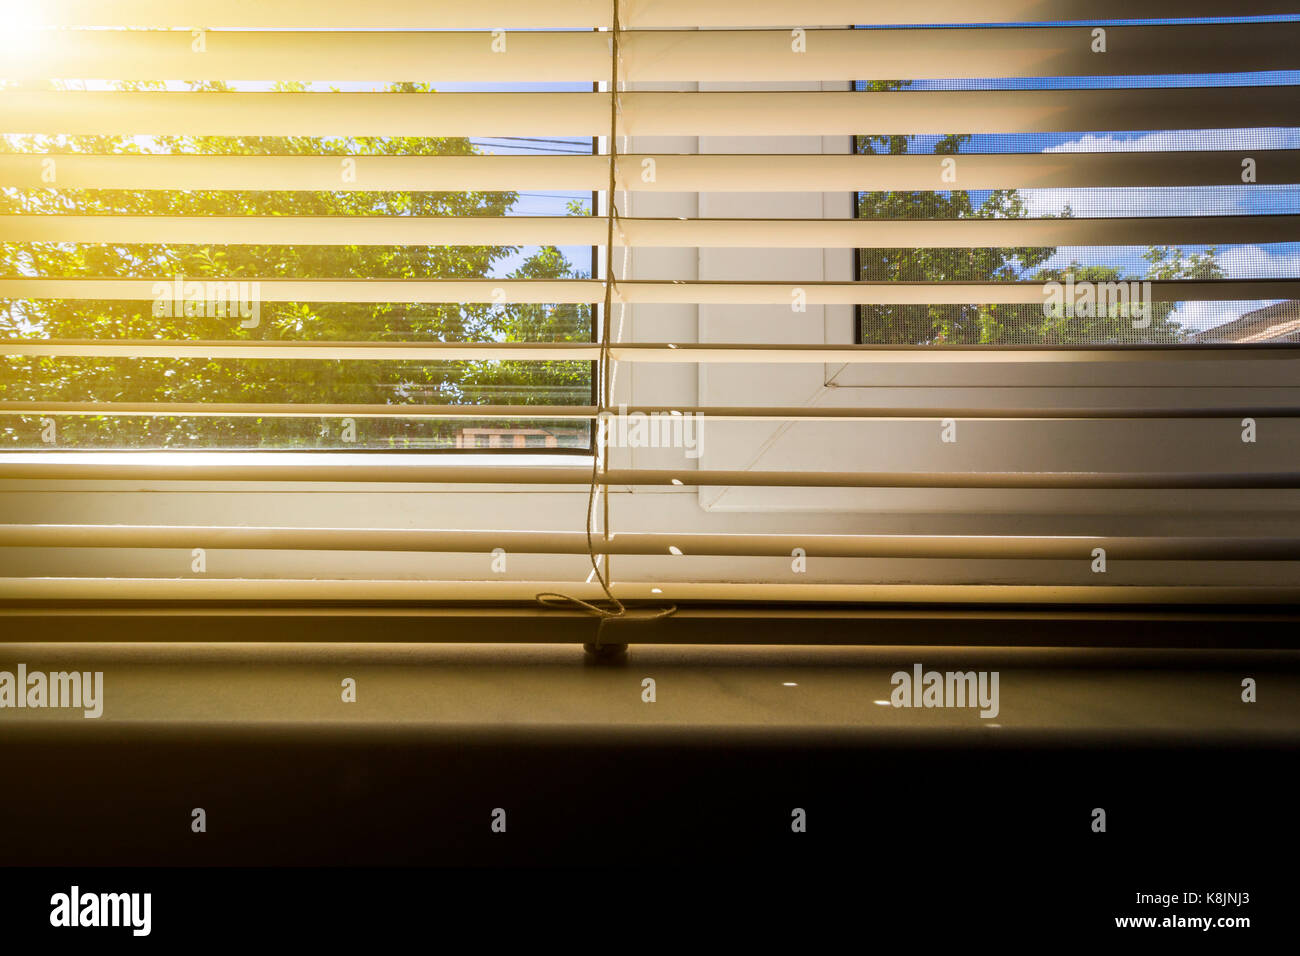 The summer sun shines through the blinds of the window of a rural house. Stock Photo